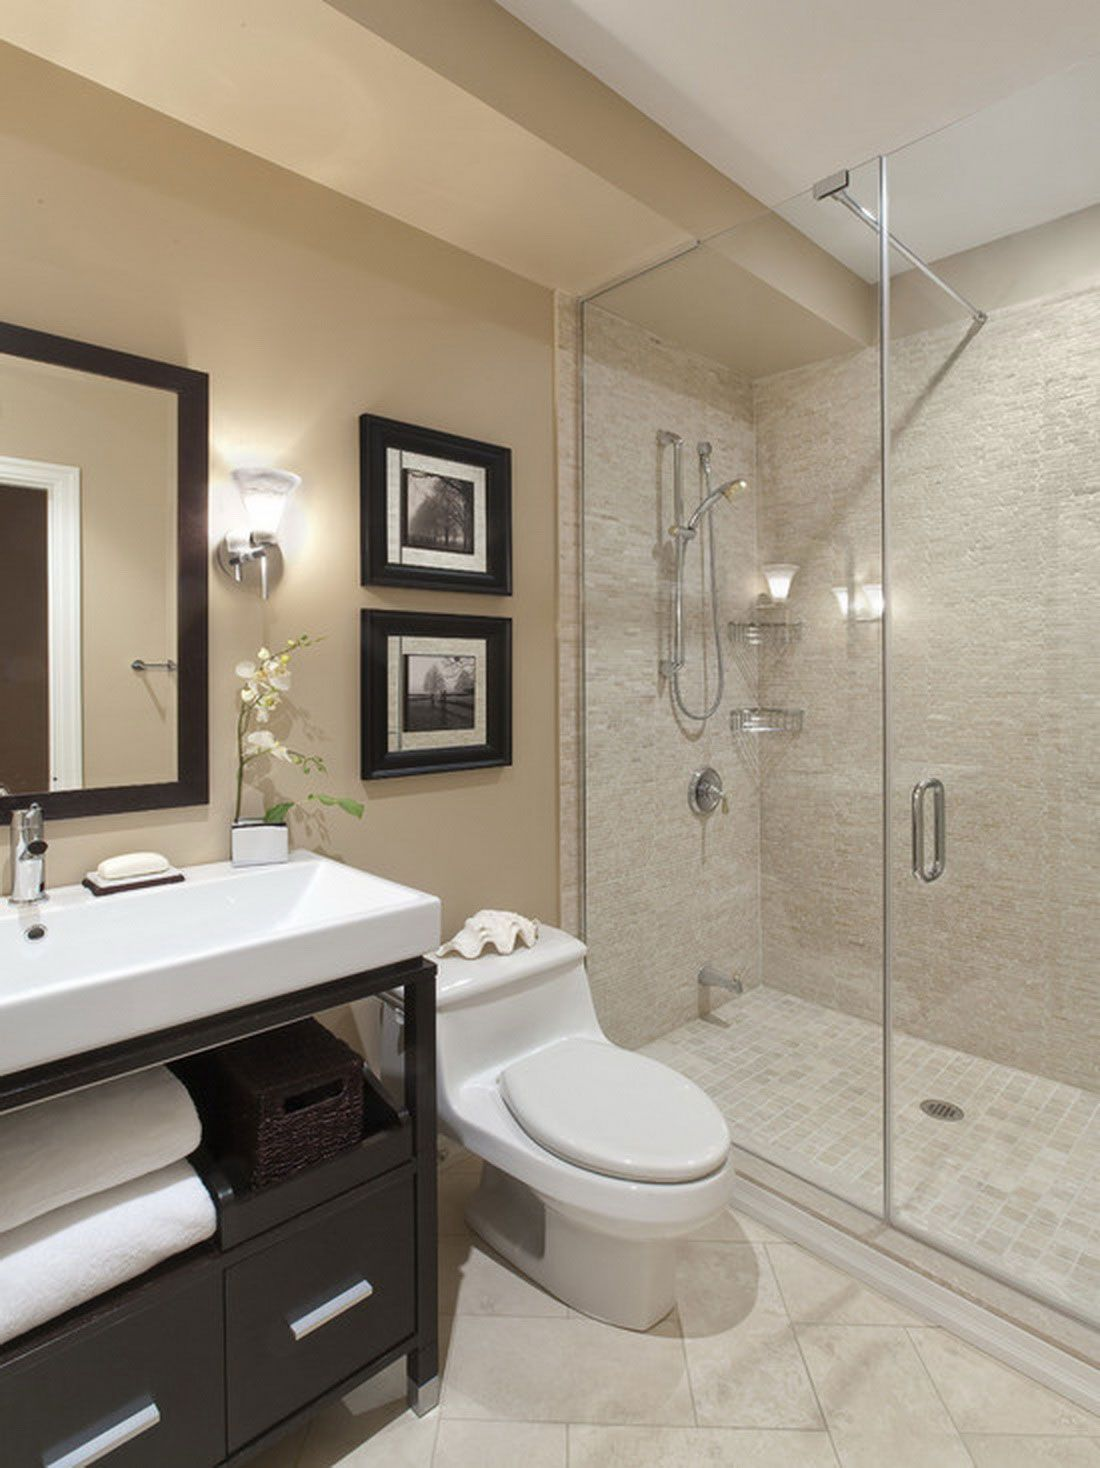 15 extraordinary transitional bathroom designs for any Small house bathroom design